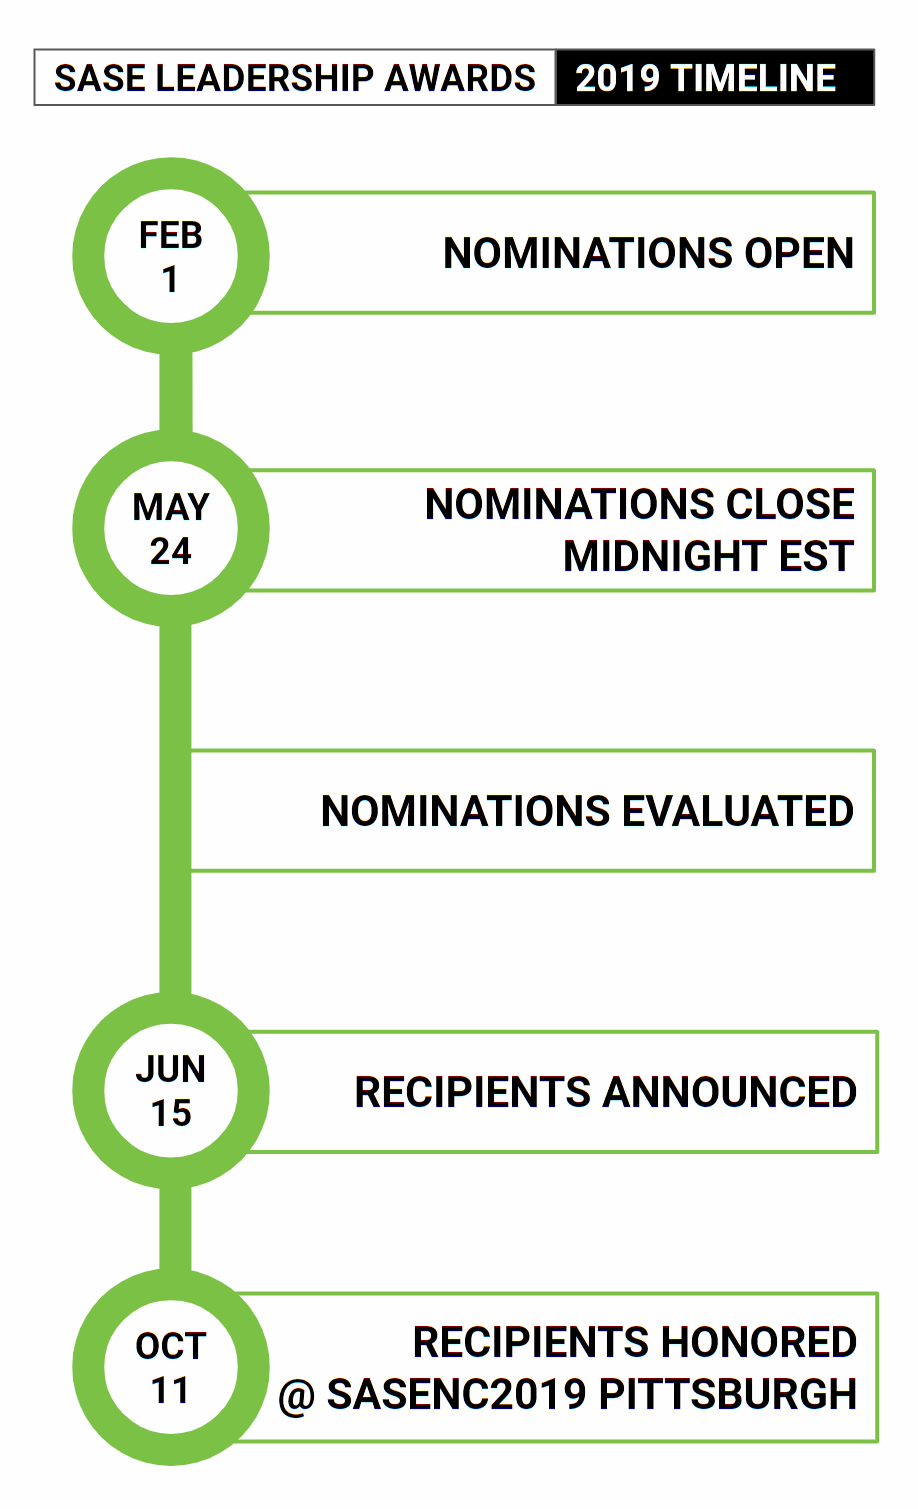 2019 SASE Leadership Award Timeline